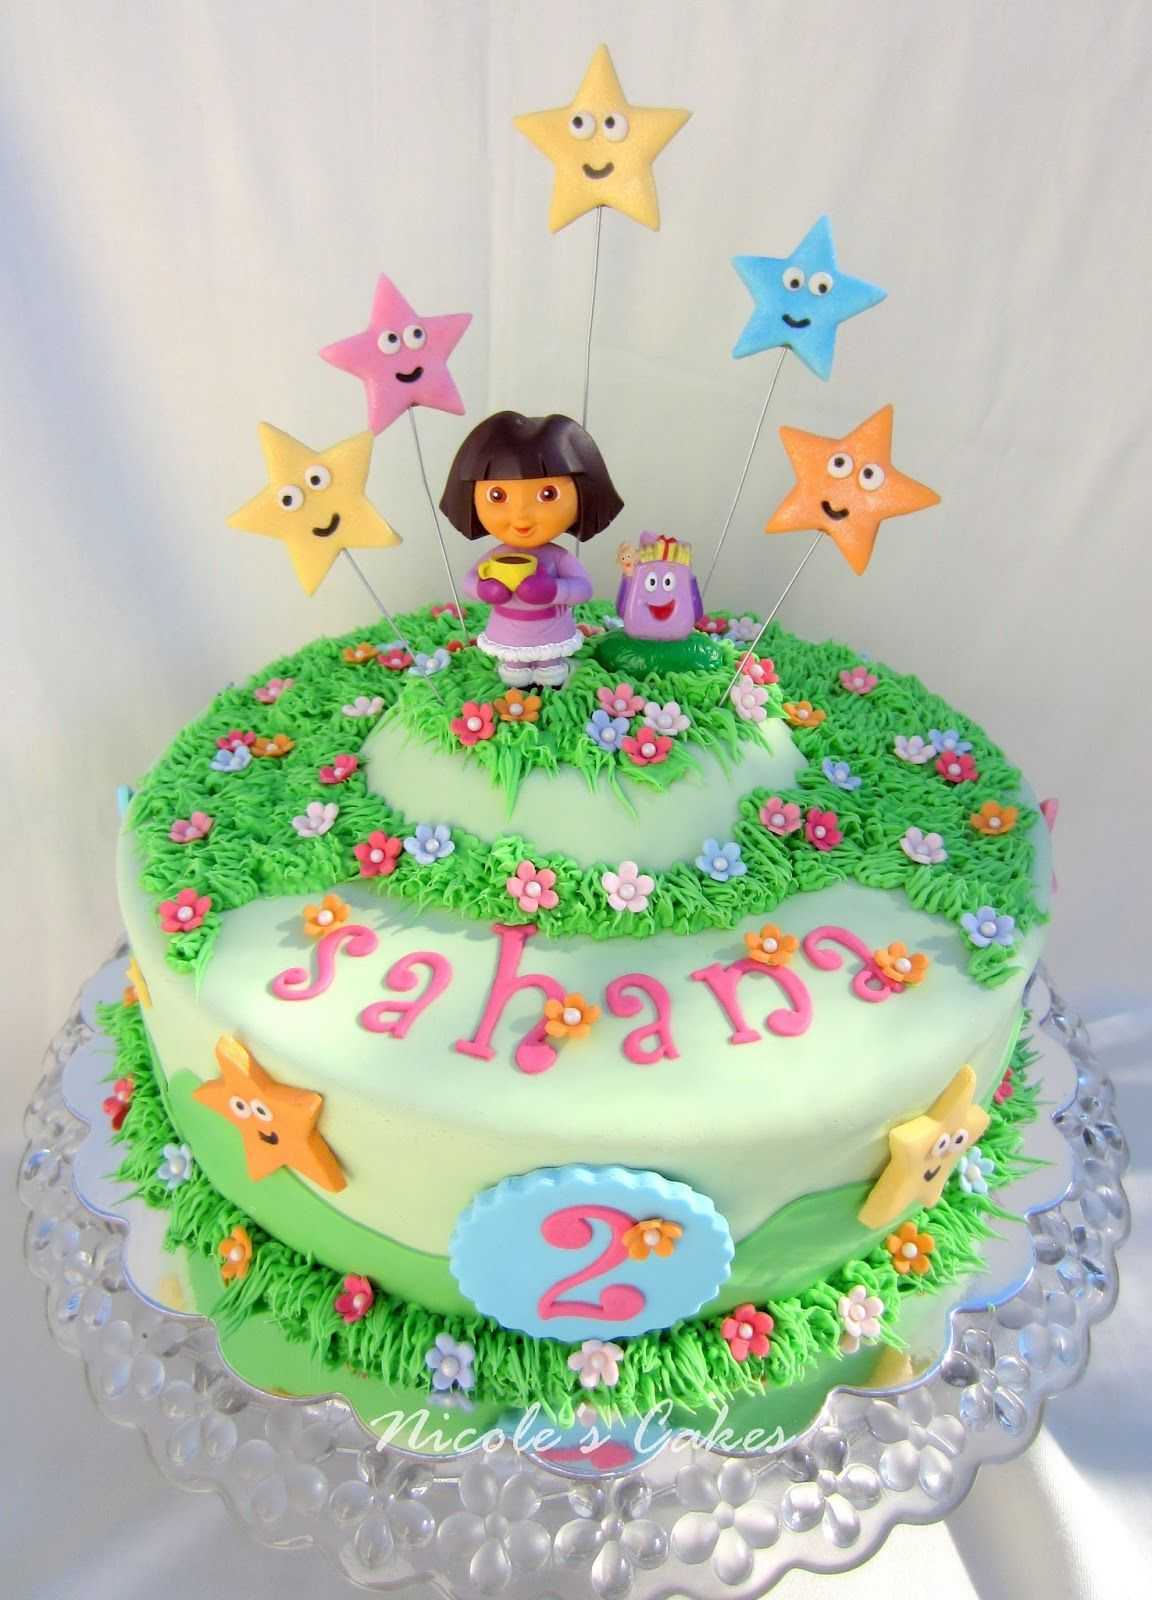 Custom designed birthday cake for a young Dora The Explorer fan